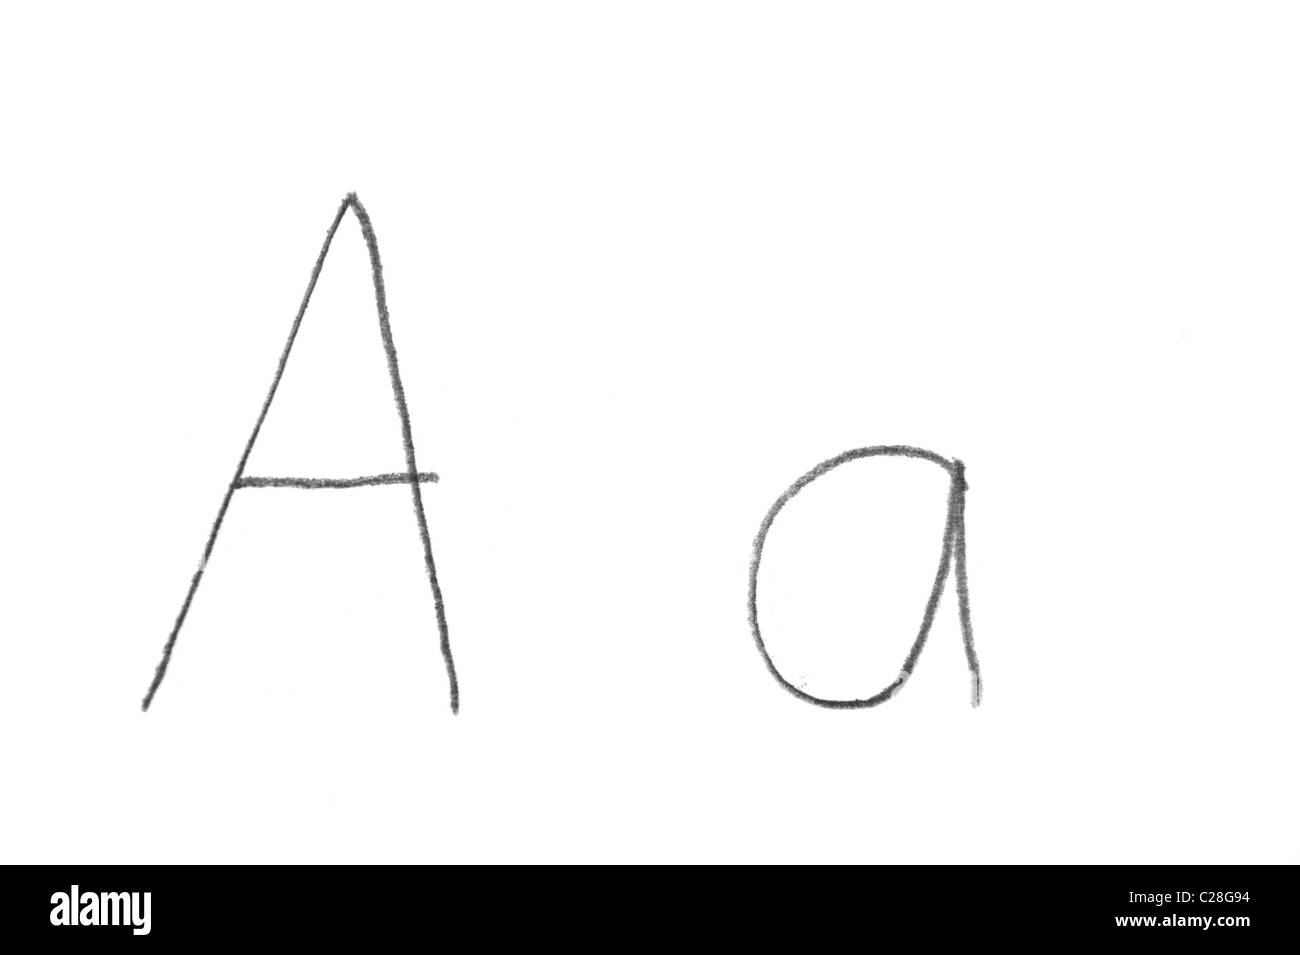 Hand written letter A, both upper and lower case - Stock Image